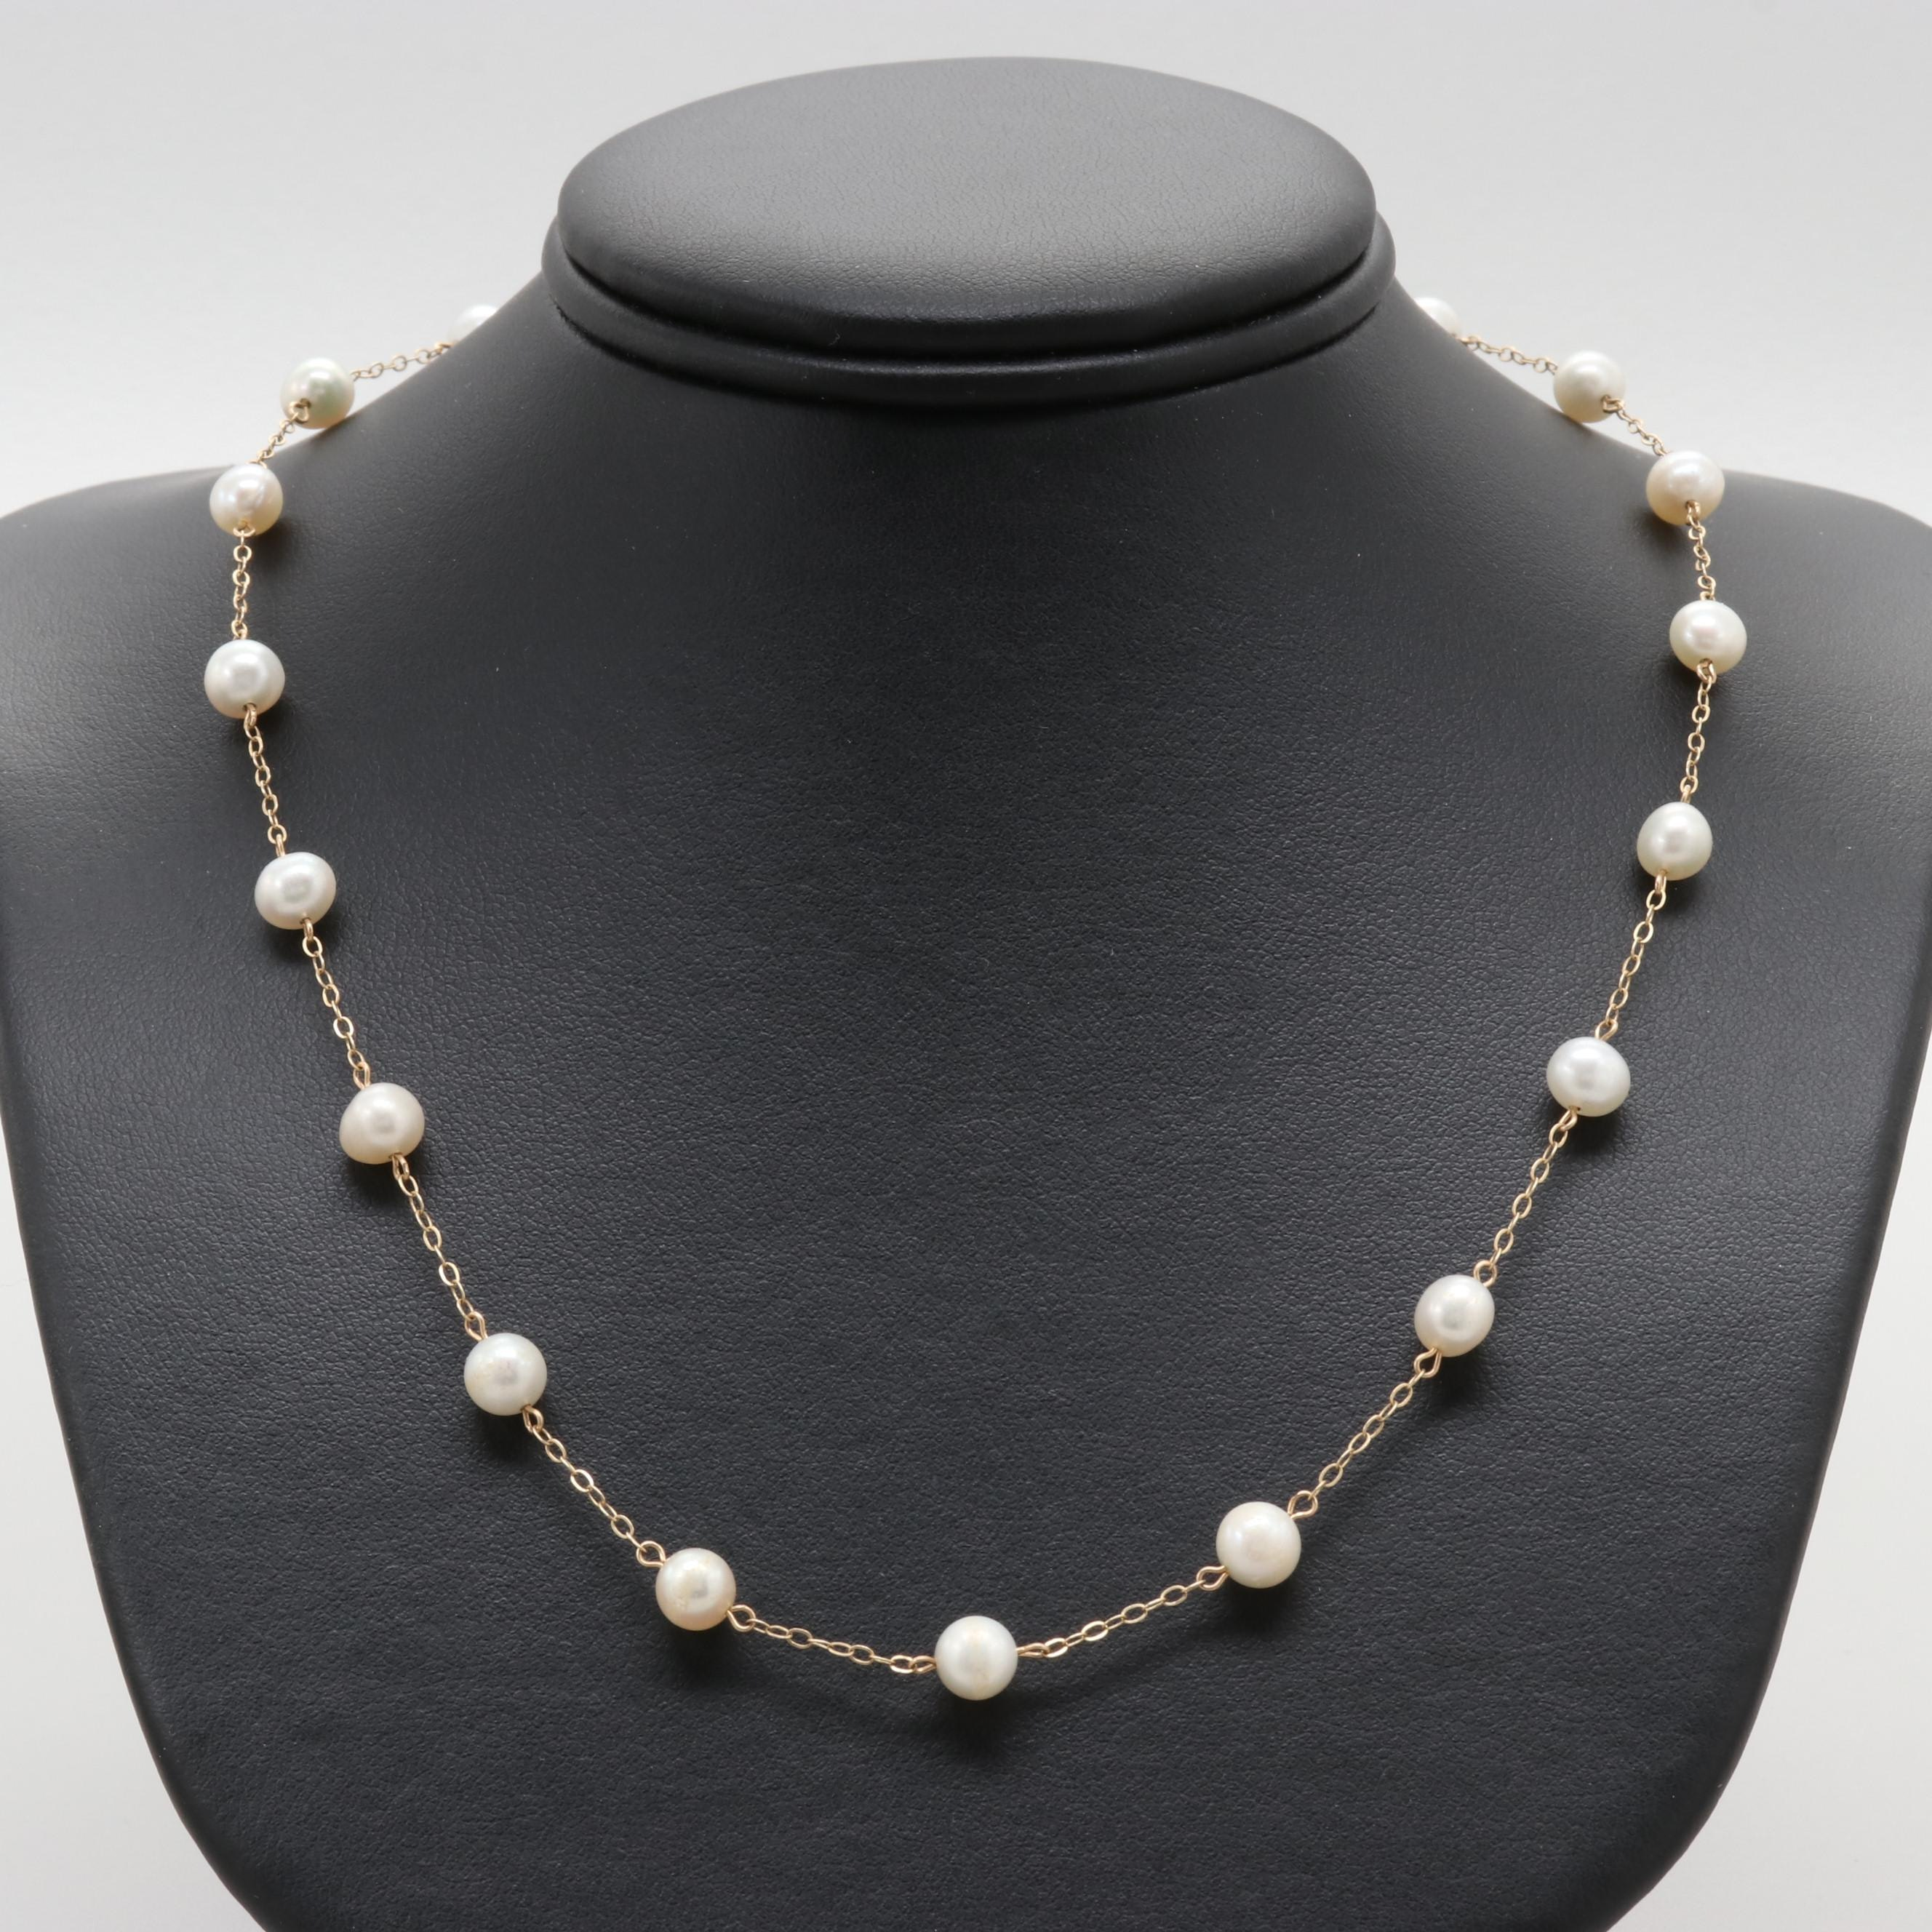 Peter Brams 14K Yellow Gold Cultured Pearl Necklace